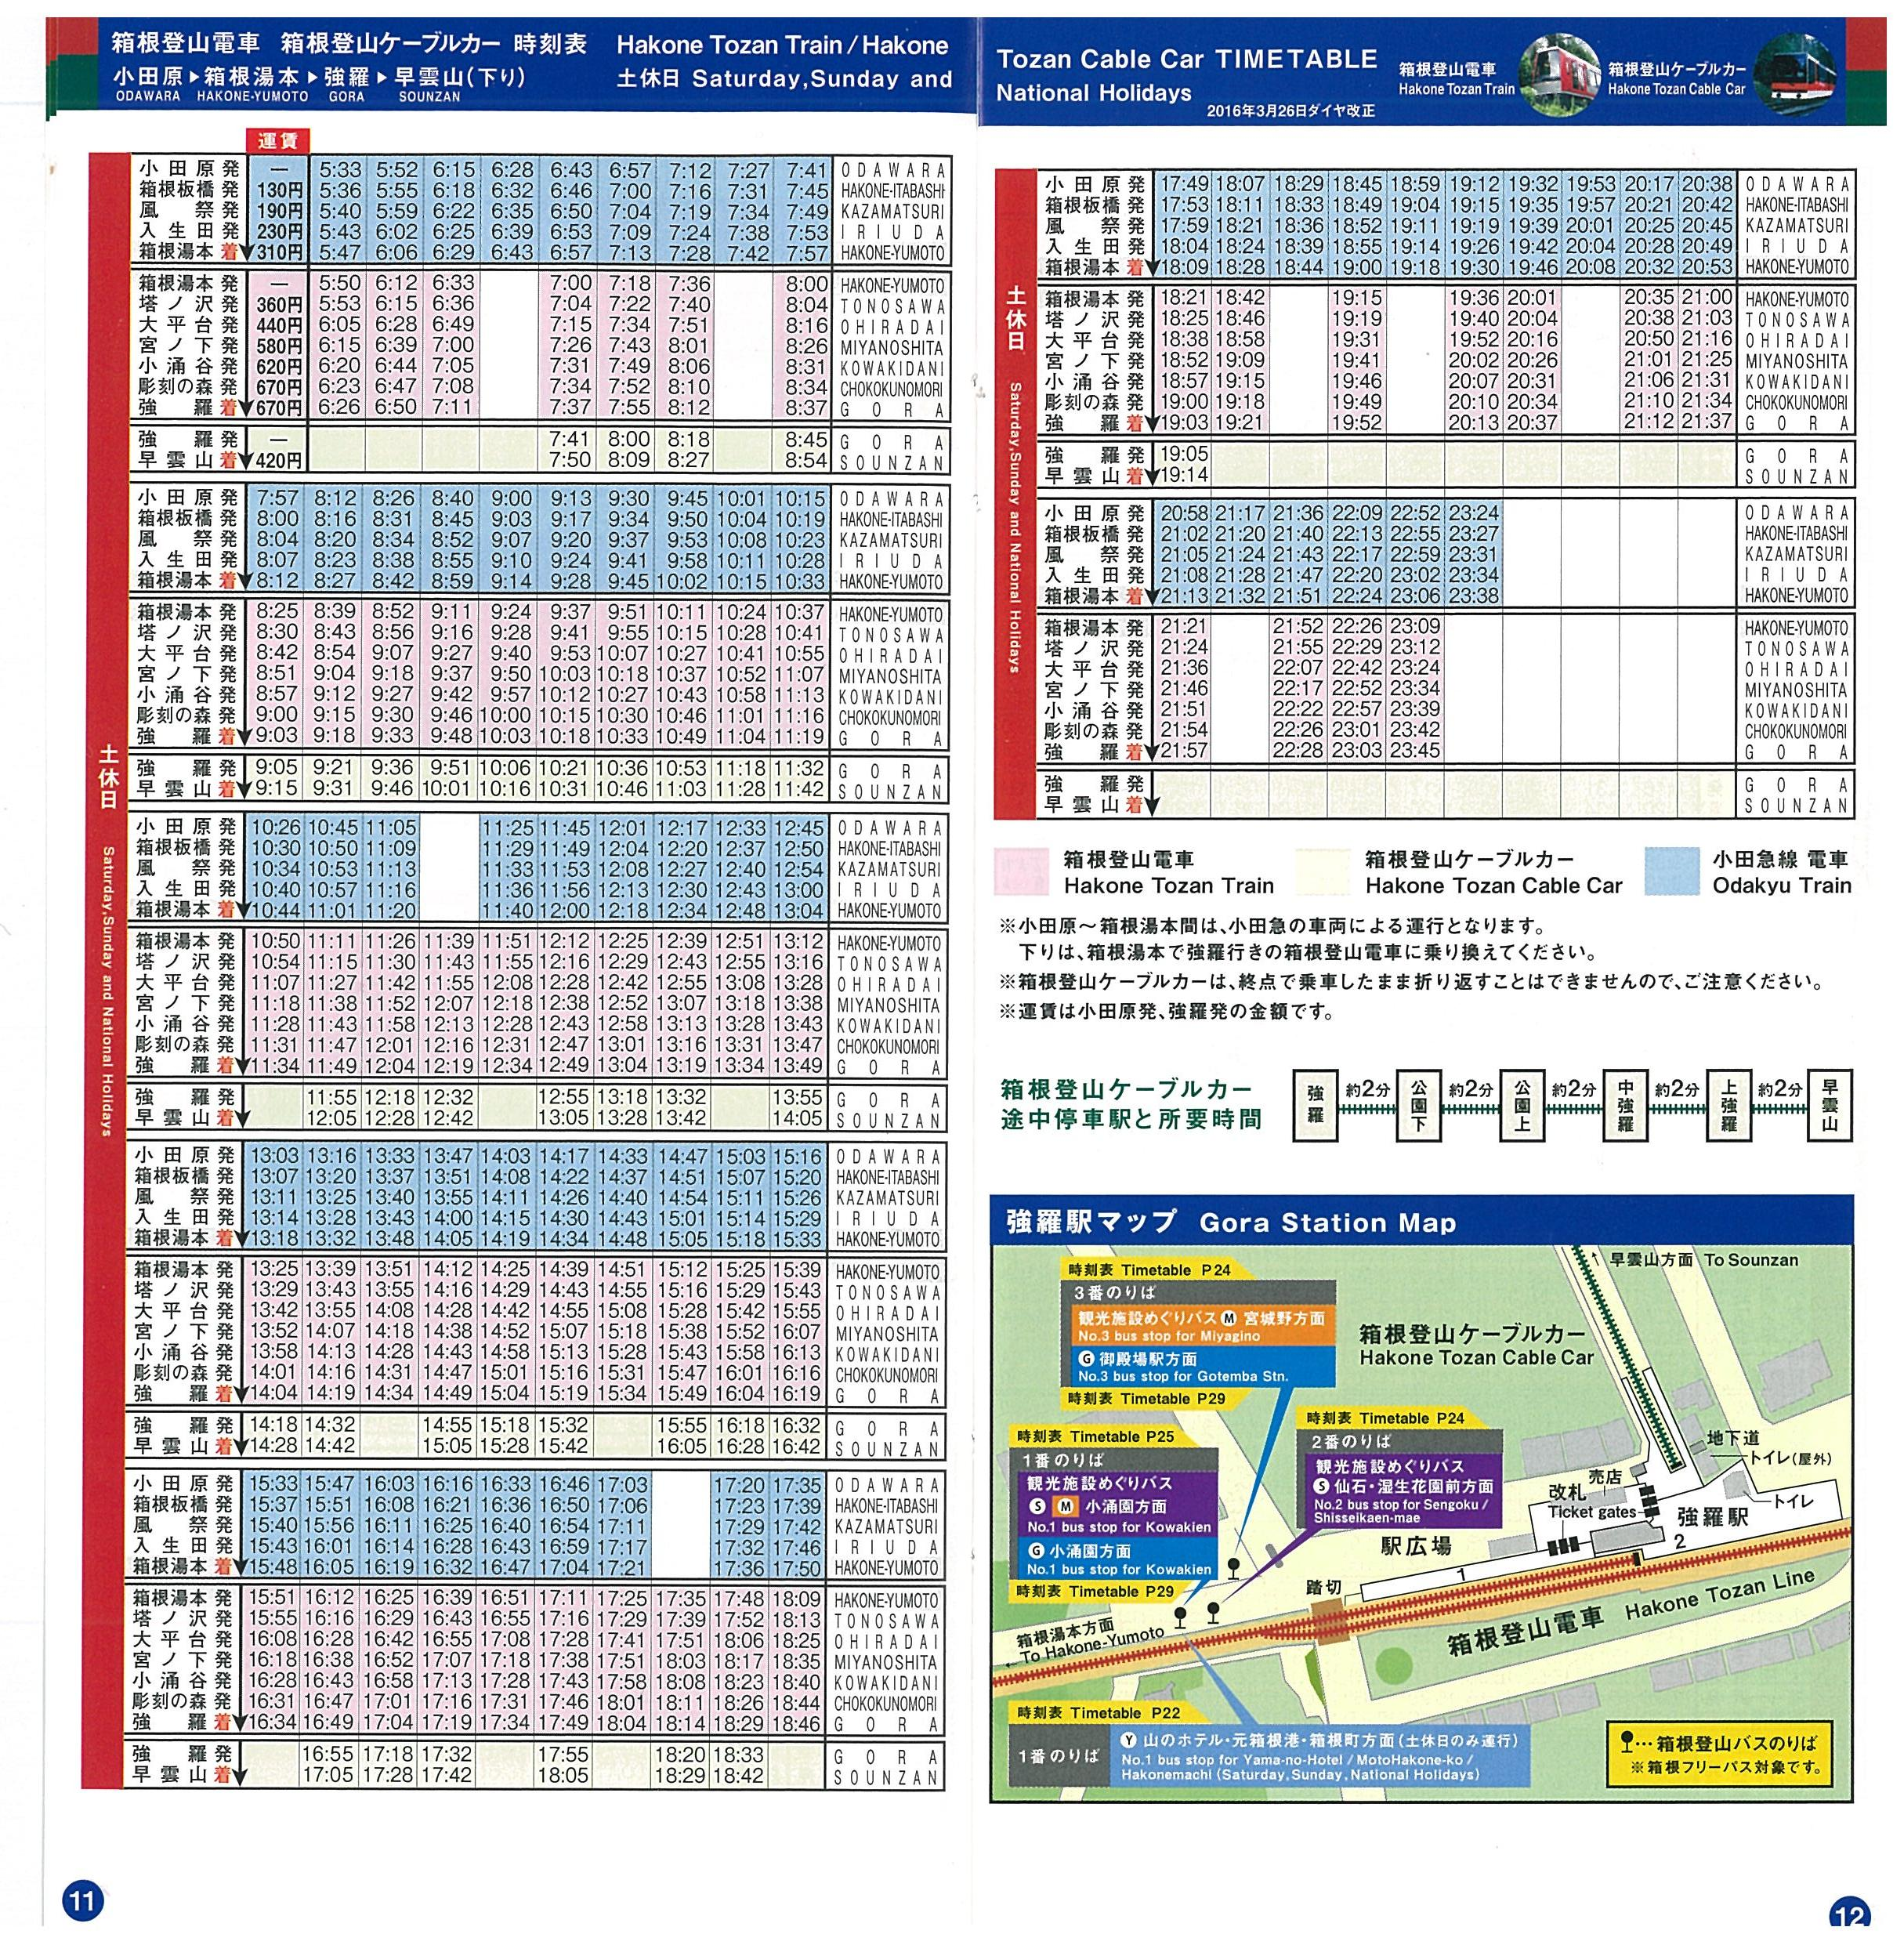 [Continuation] Day Trip from Tokyo : Hakone 箱根. Maps and timeteables. Pages 11 and 12. Hakone Tozan Train  and the Hakone Tozan Cable Car Timetables箱根登山電車 箱根登山ケーブルカー時刻表